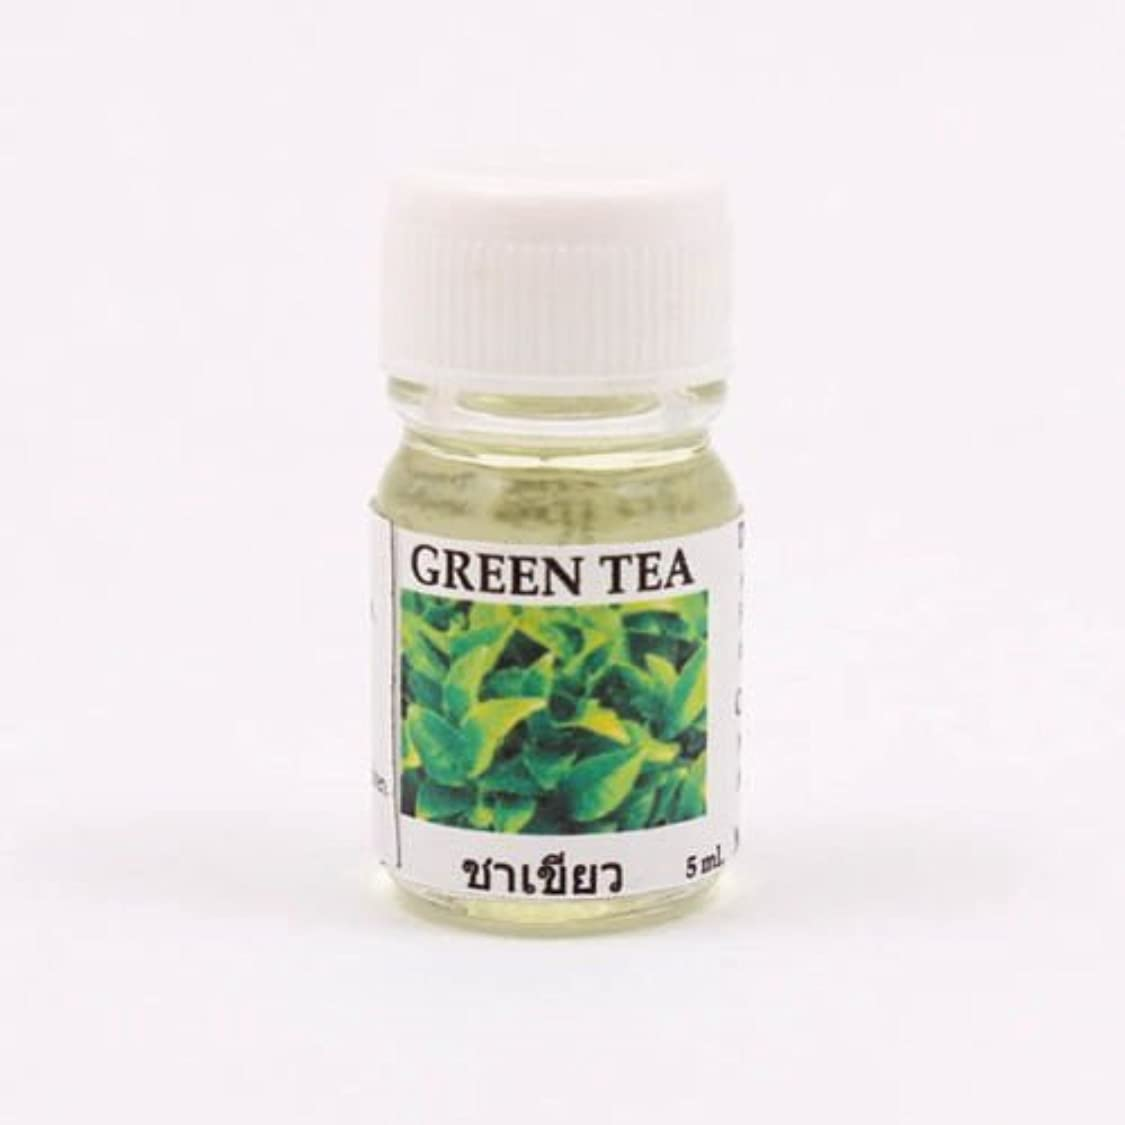 レコーダー農夫真面目な6X Green Tea Aroma Fragrance Essential Oil 5ML cc Diffuser Burner Therapy